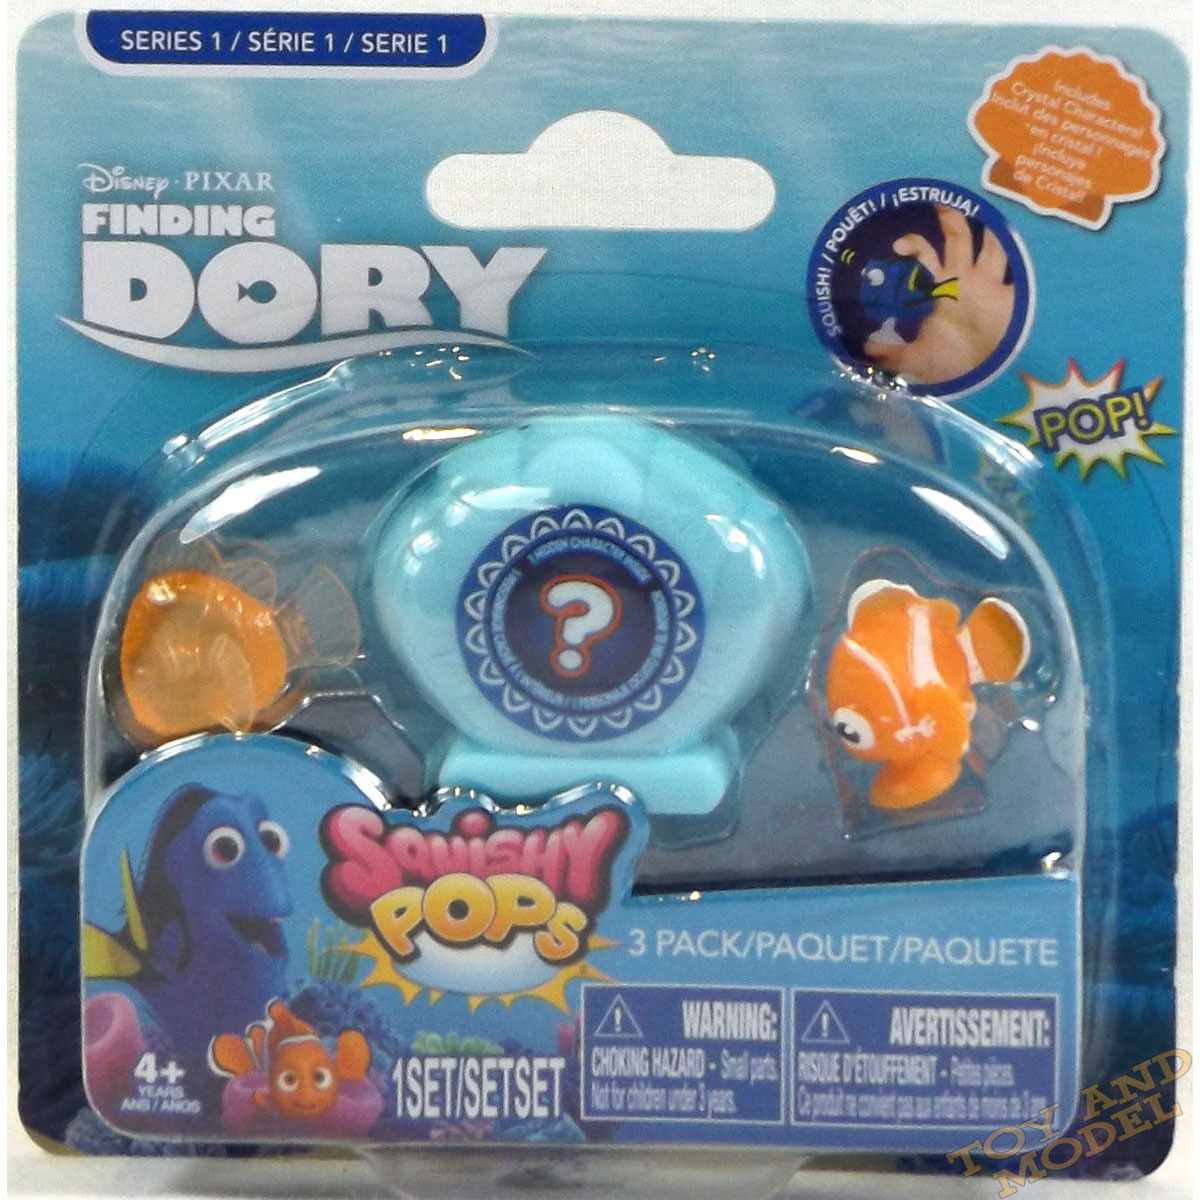 Squishy Toys Pack : Finding Dory Squishy Pops 3 Pack on Card (includes 1 Shell) UK Seller 4 Yrs+NEW eBay